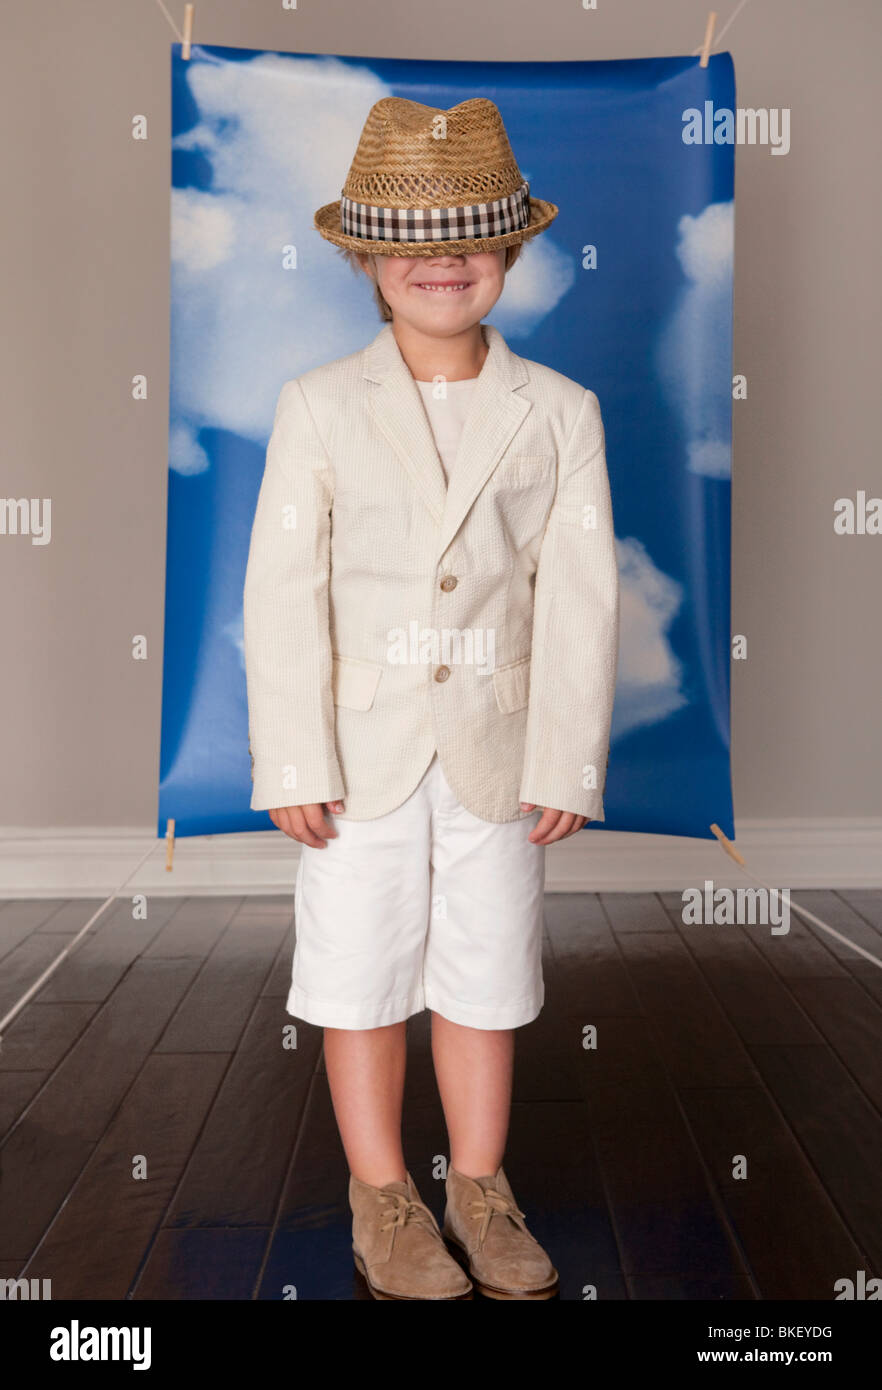 Dressed up boy in front of blue sky back drop - Stock Image